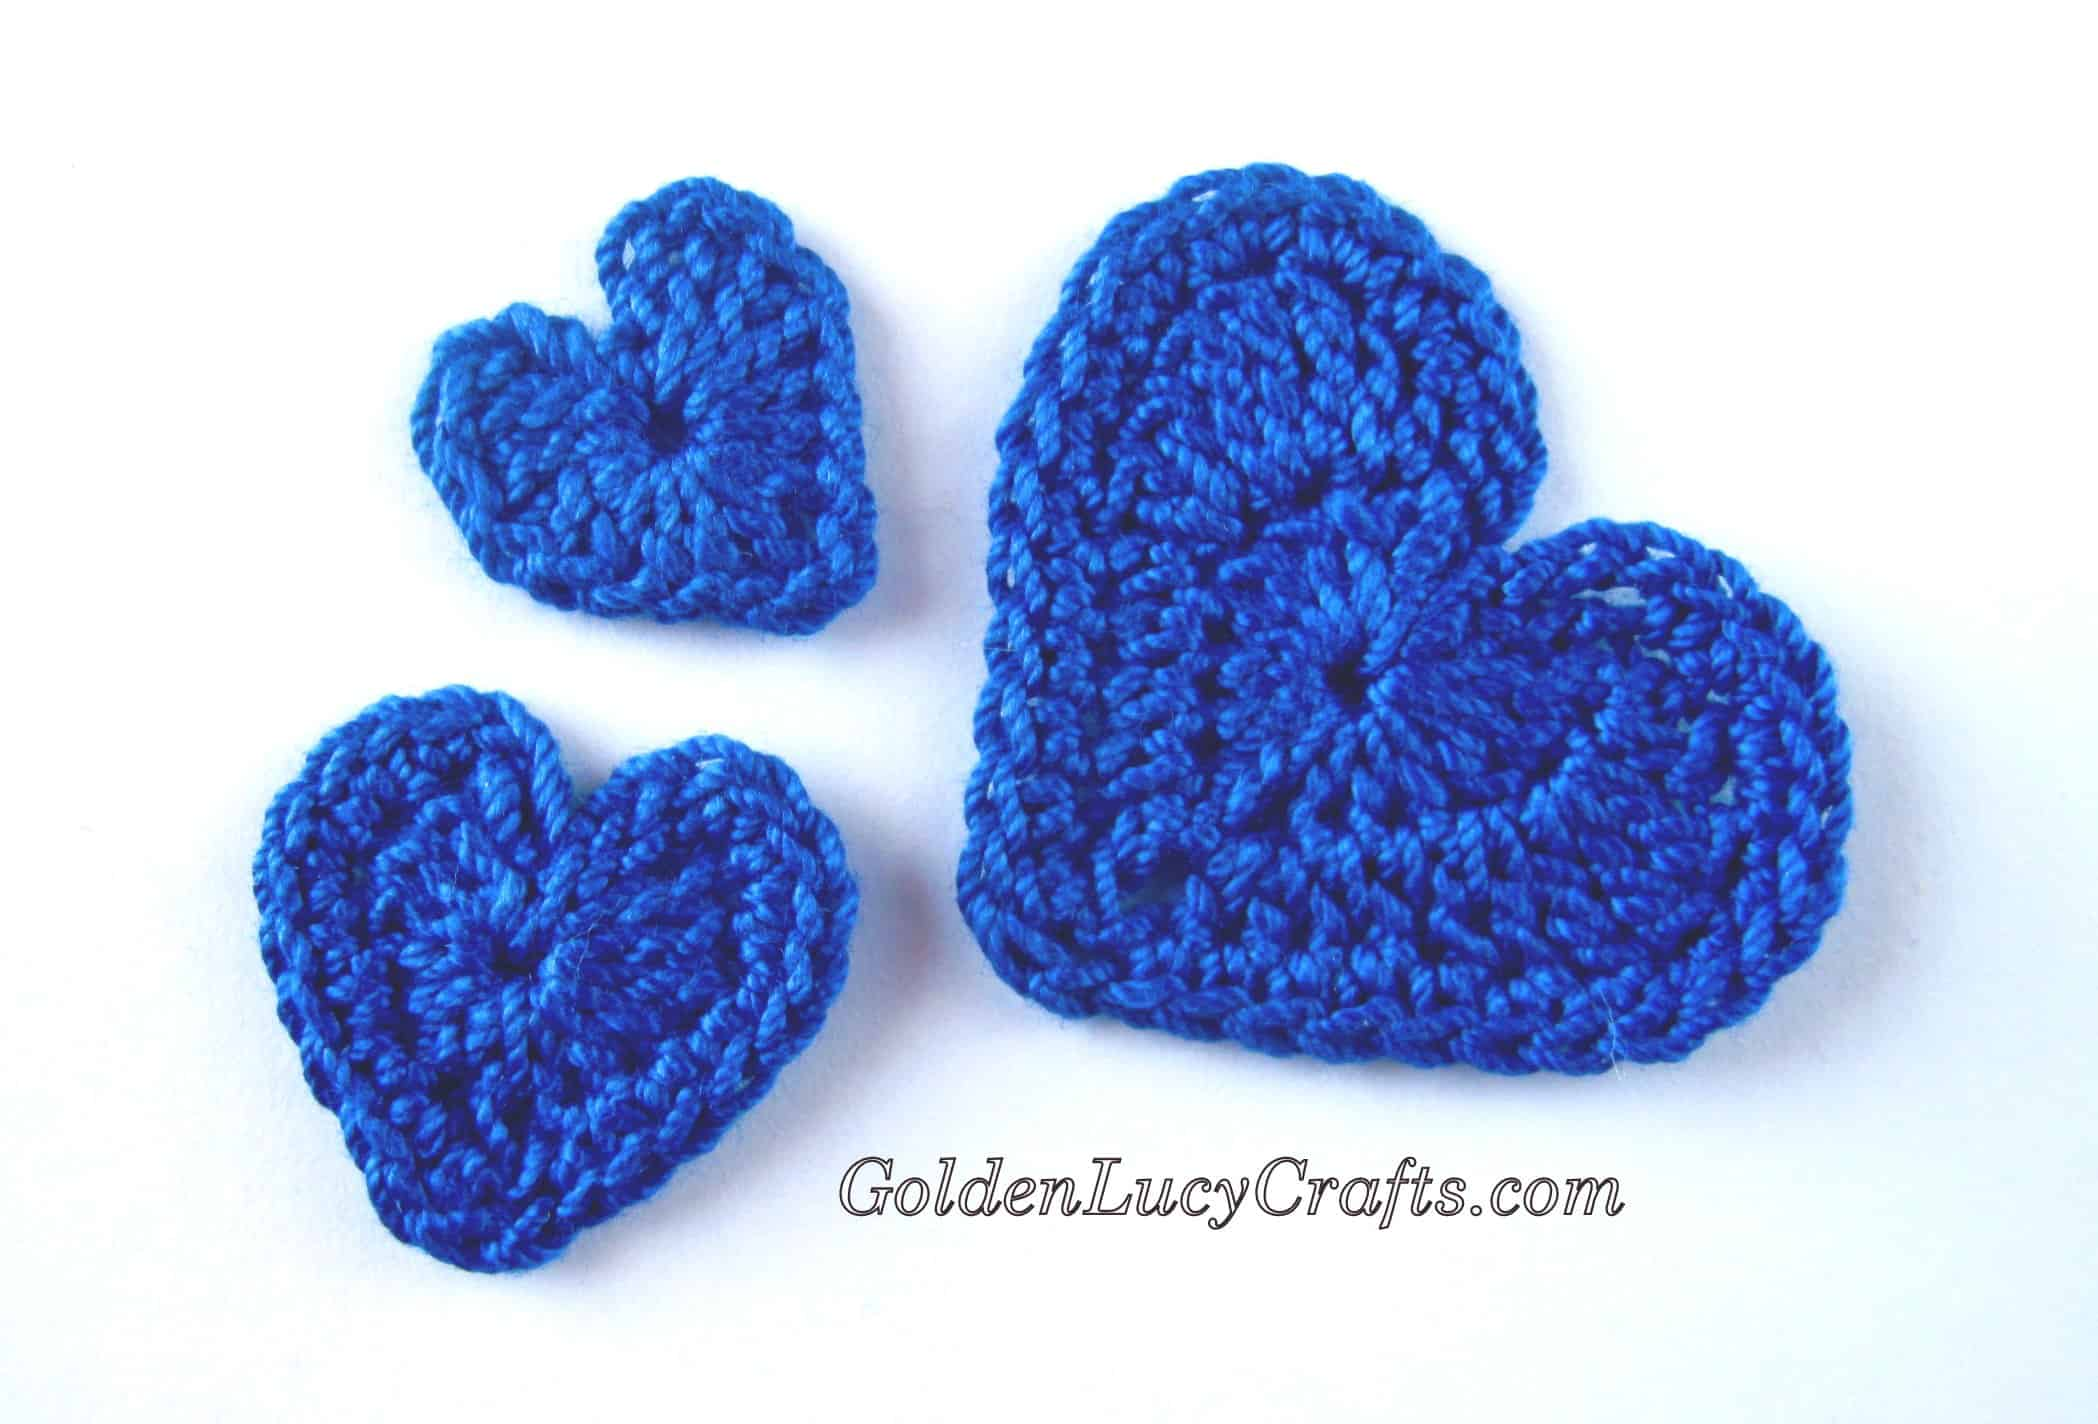 Applique Crochet Hearts Applique Free Crochet Pattern